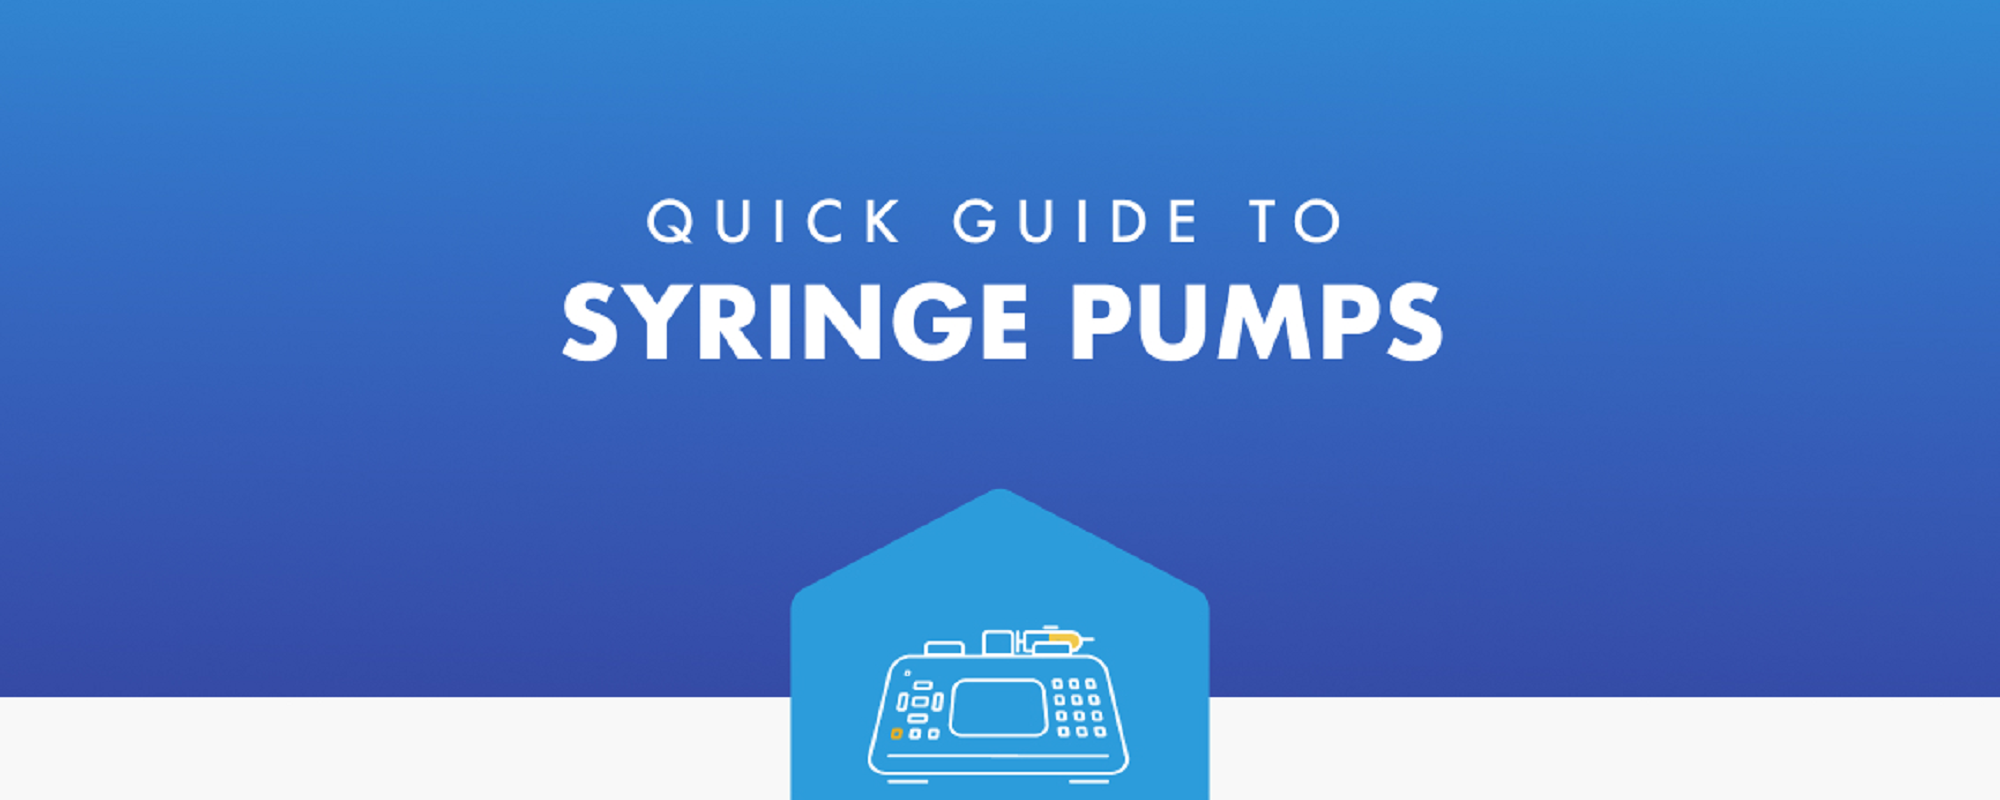 LabX Infographic: Chemyx High Performance Syringe Pumps